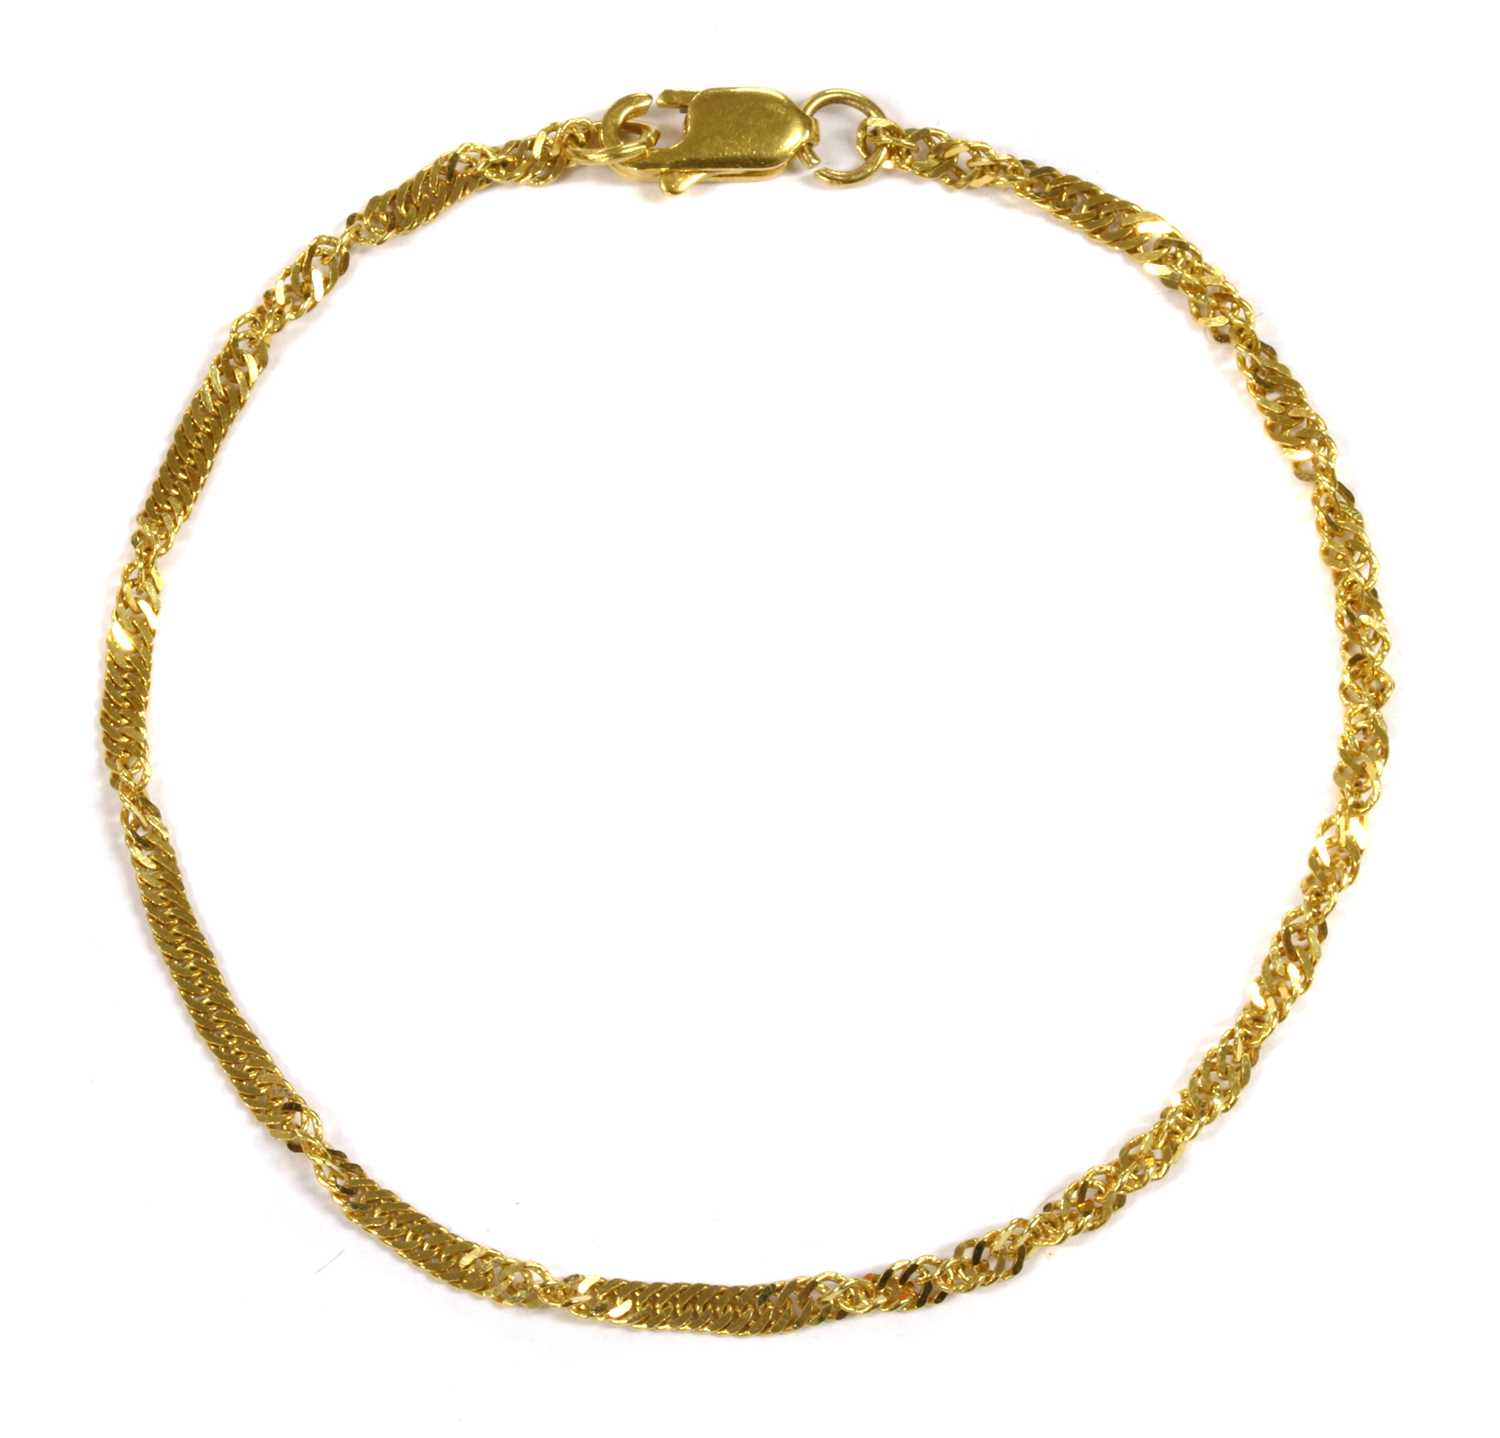 Lot 57 - A 22ct gold twisted curb link bracelet